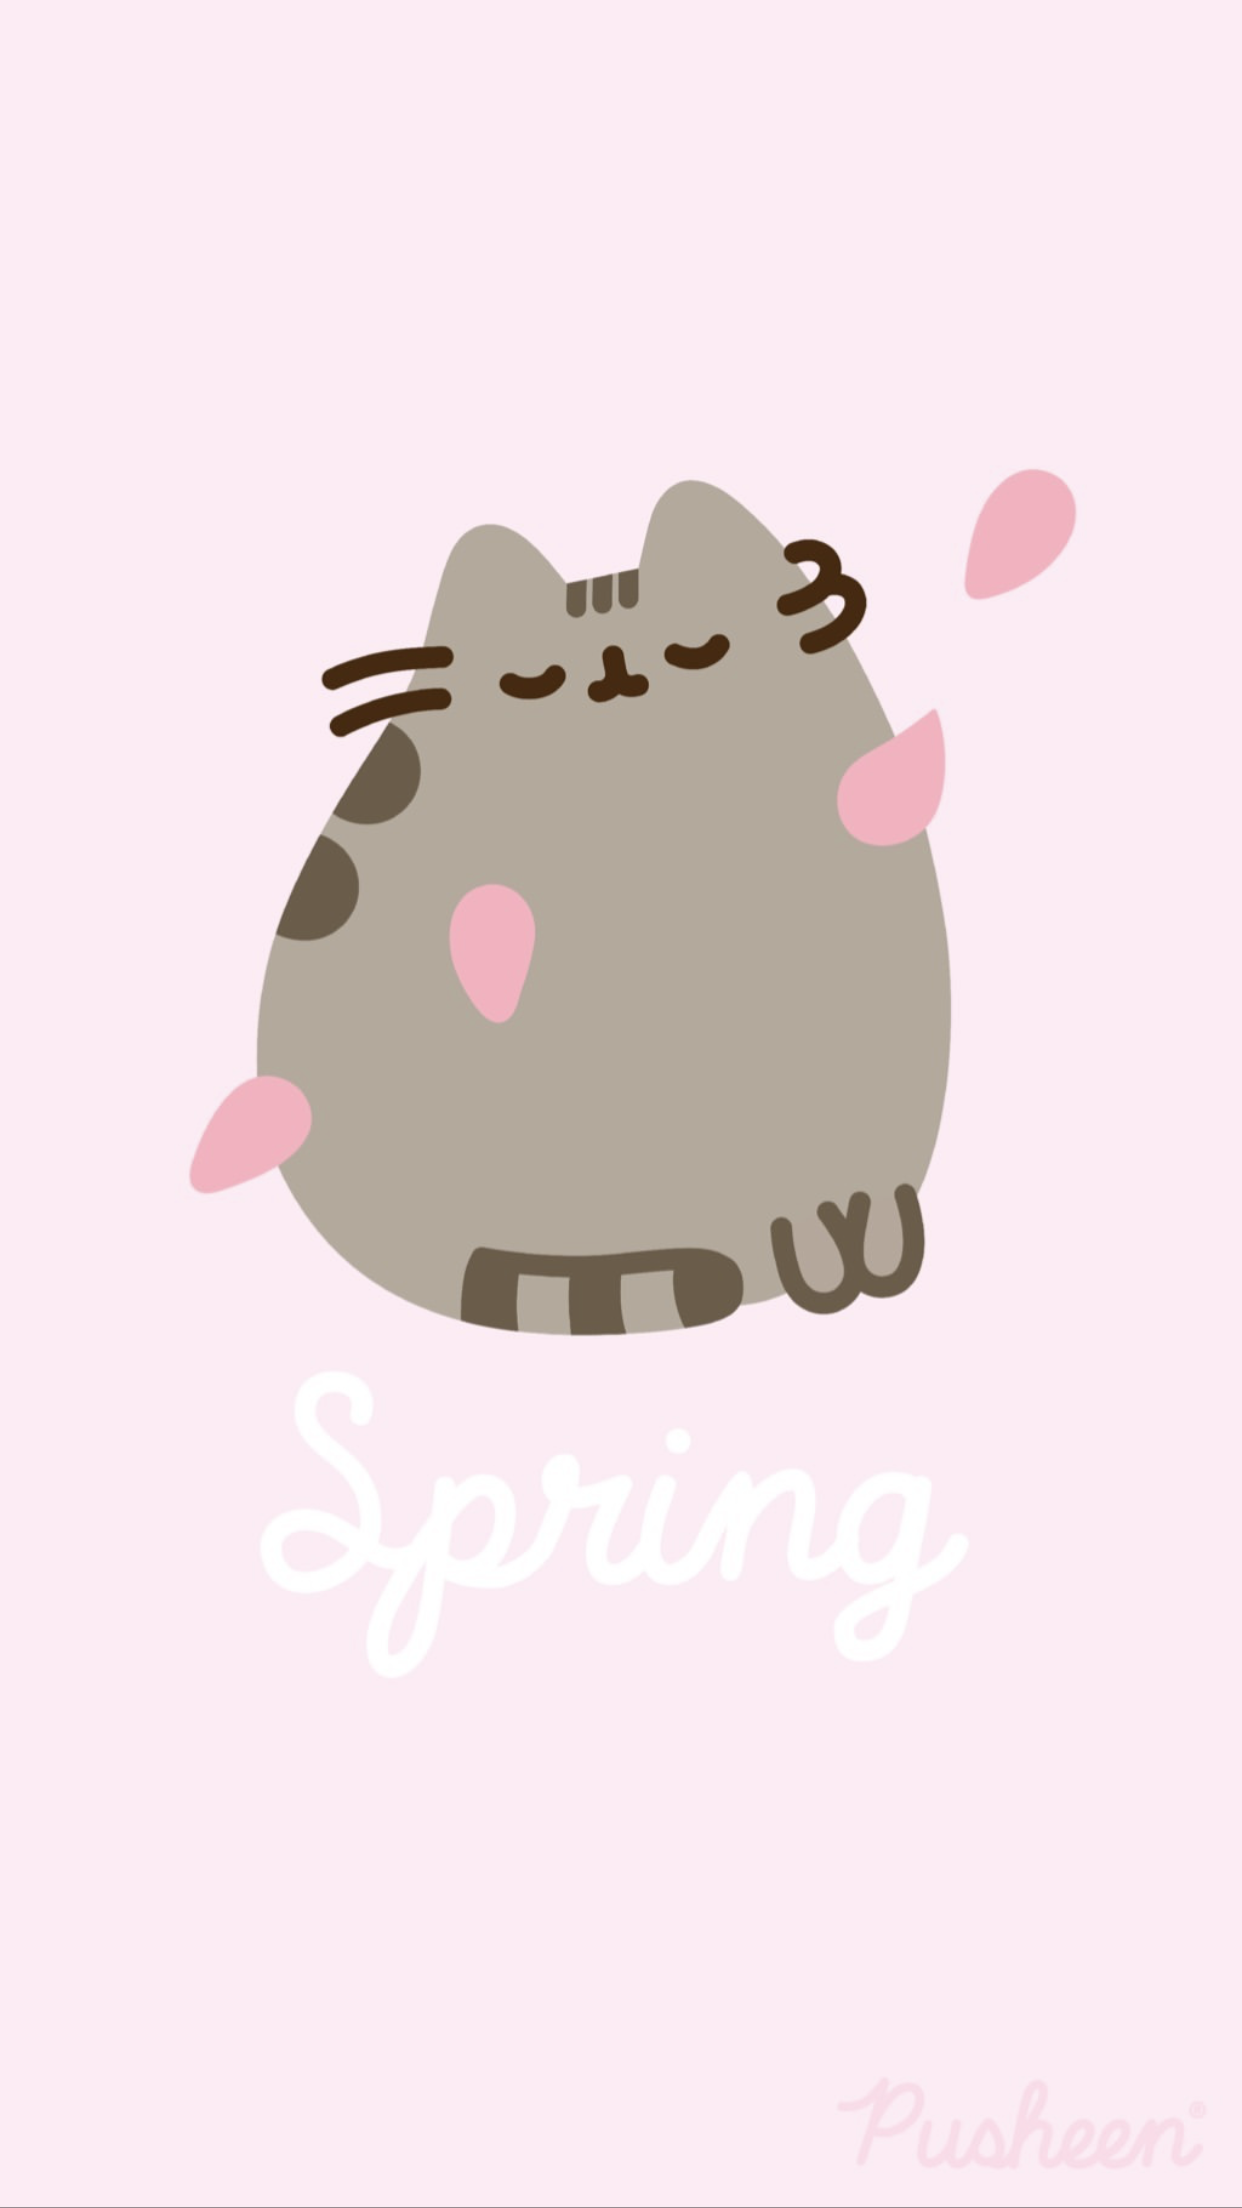 Pusheen The Cat Iphone Wallpaper Background Spring Pusheen Cute Pusheen Cat Cute Cartoon Wallpapers